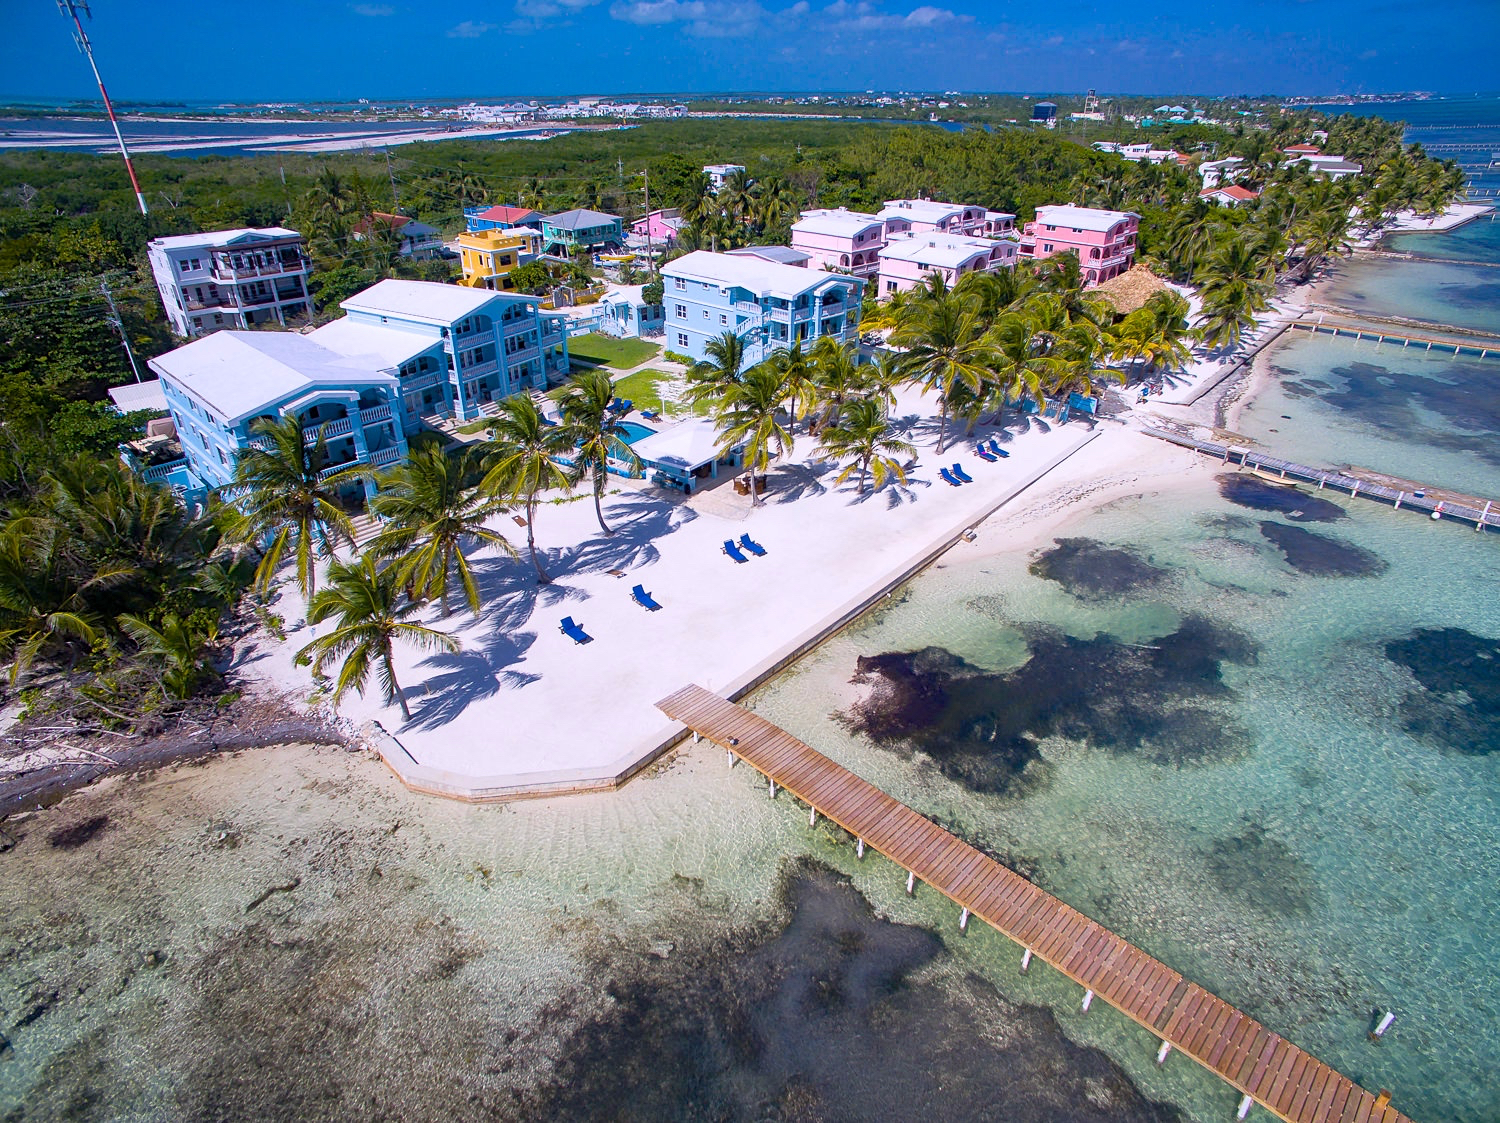 2017 Sunset Beach Resort Belize, A1 Ambergris Caye www.SunsetBeachResortBelize.com - 70